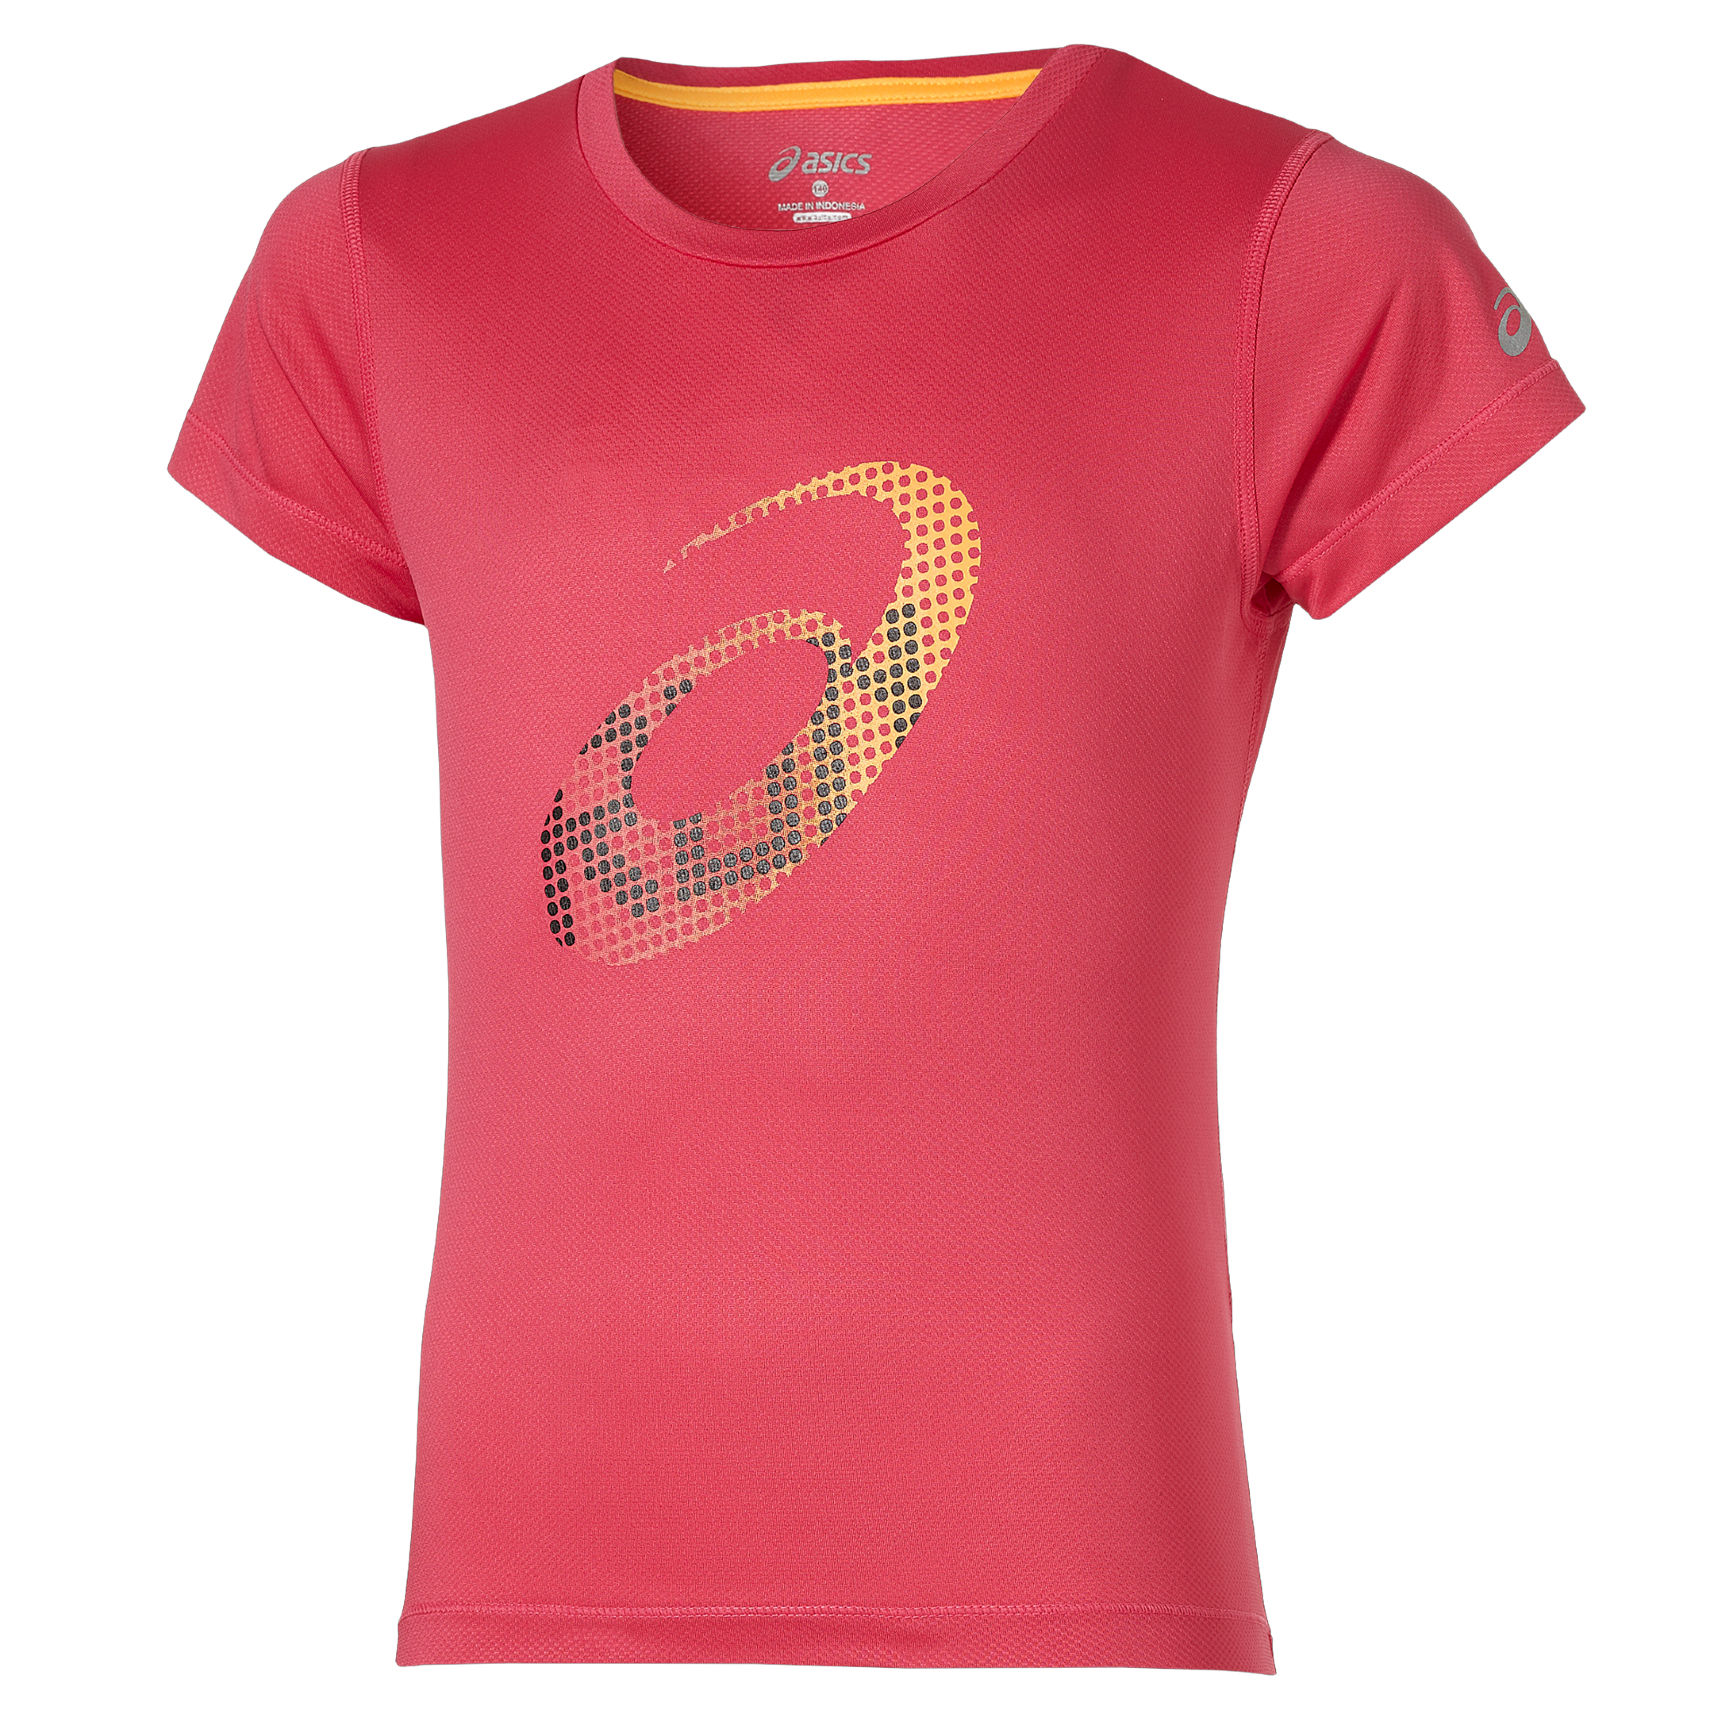 Asics Girls SS Top in Pink